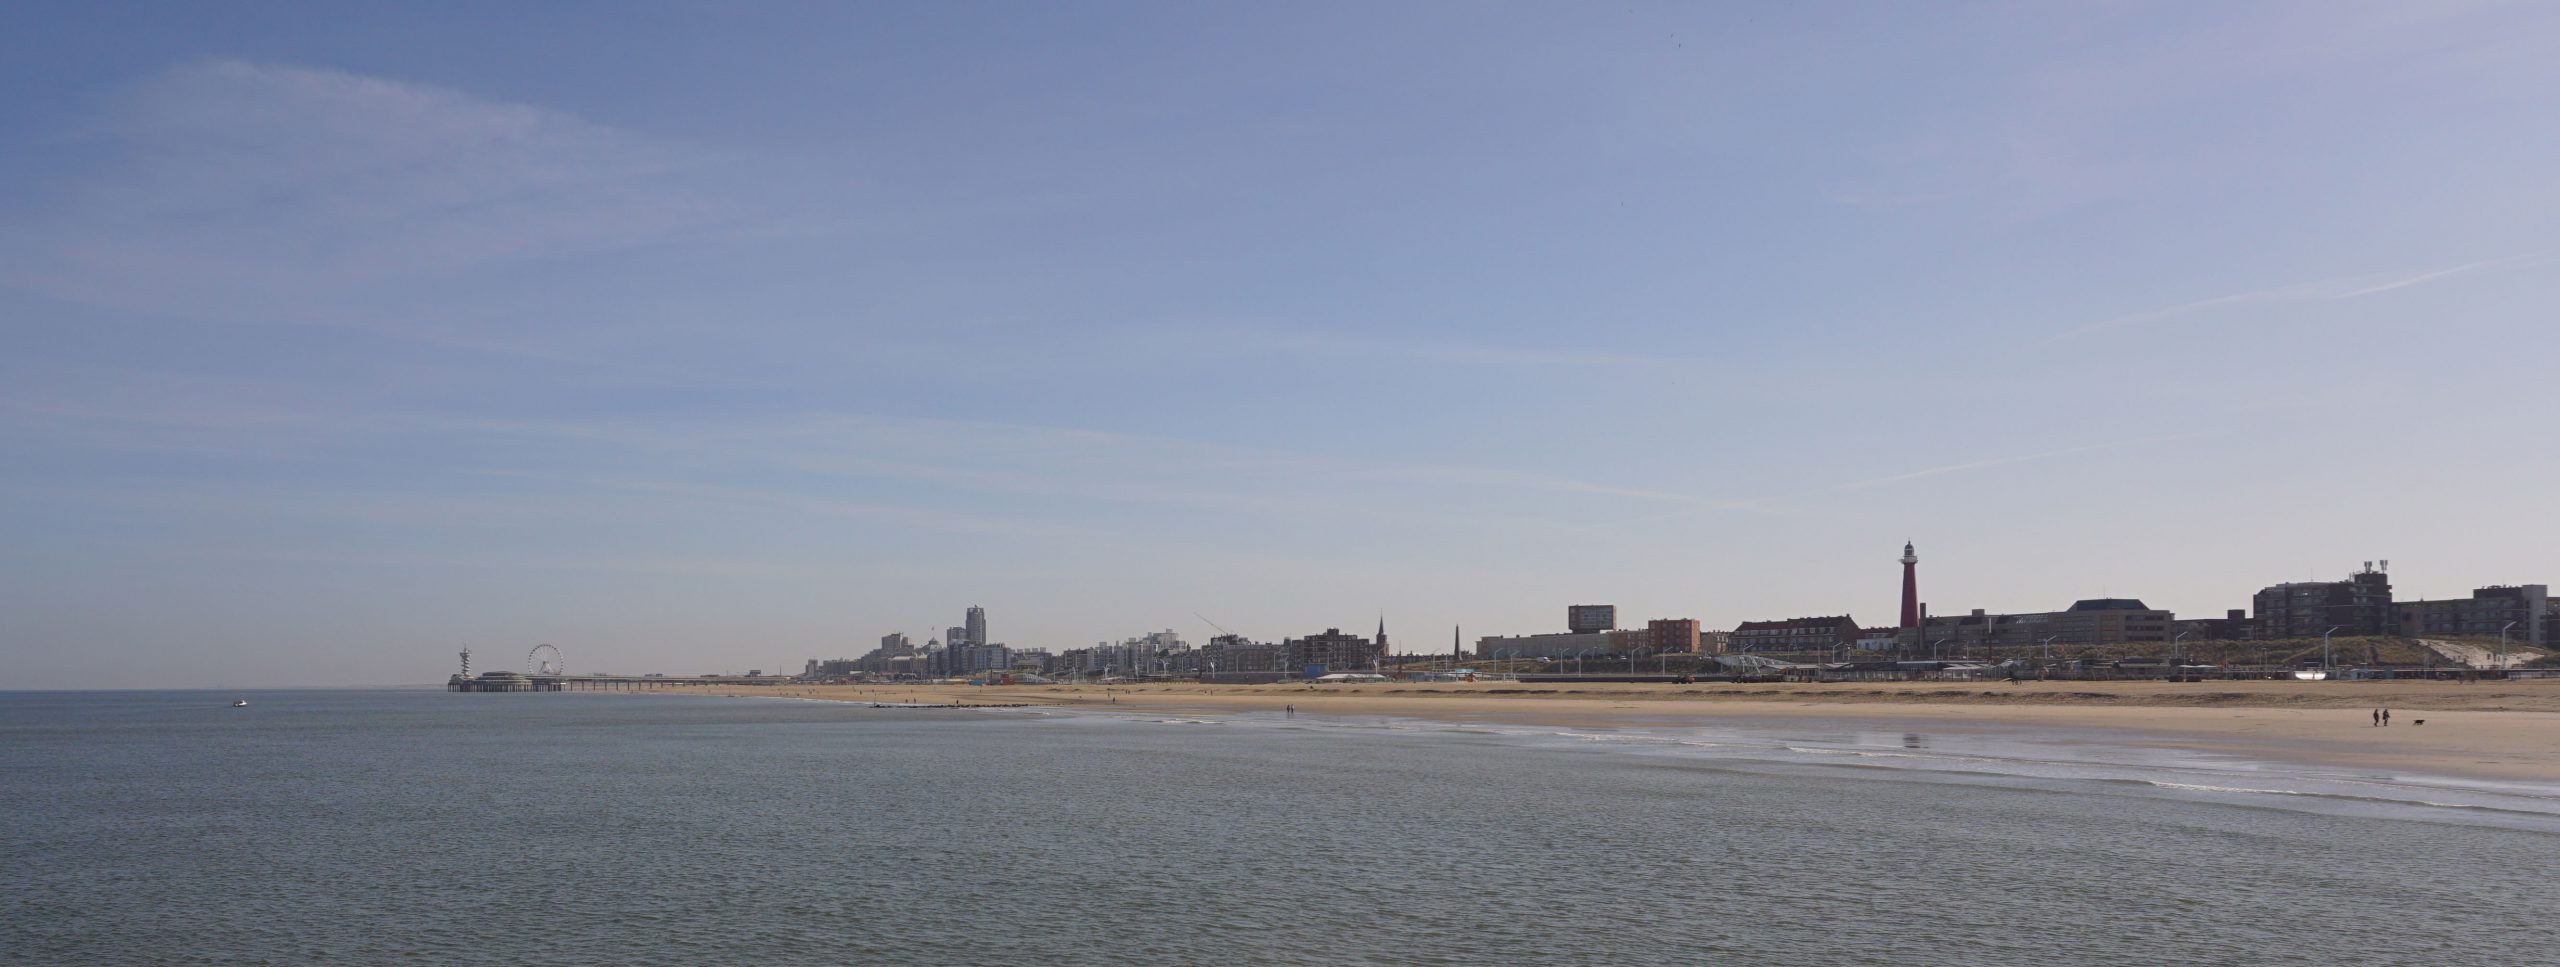 BANANA-ONLINE-MARKETING-de-pier-scheveningen-met-vuurtoren